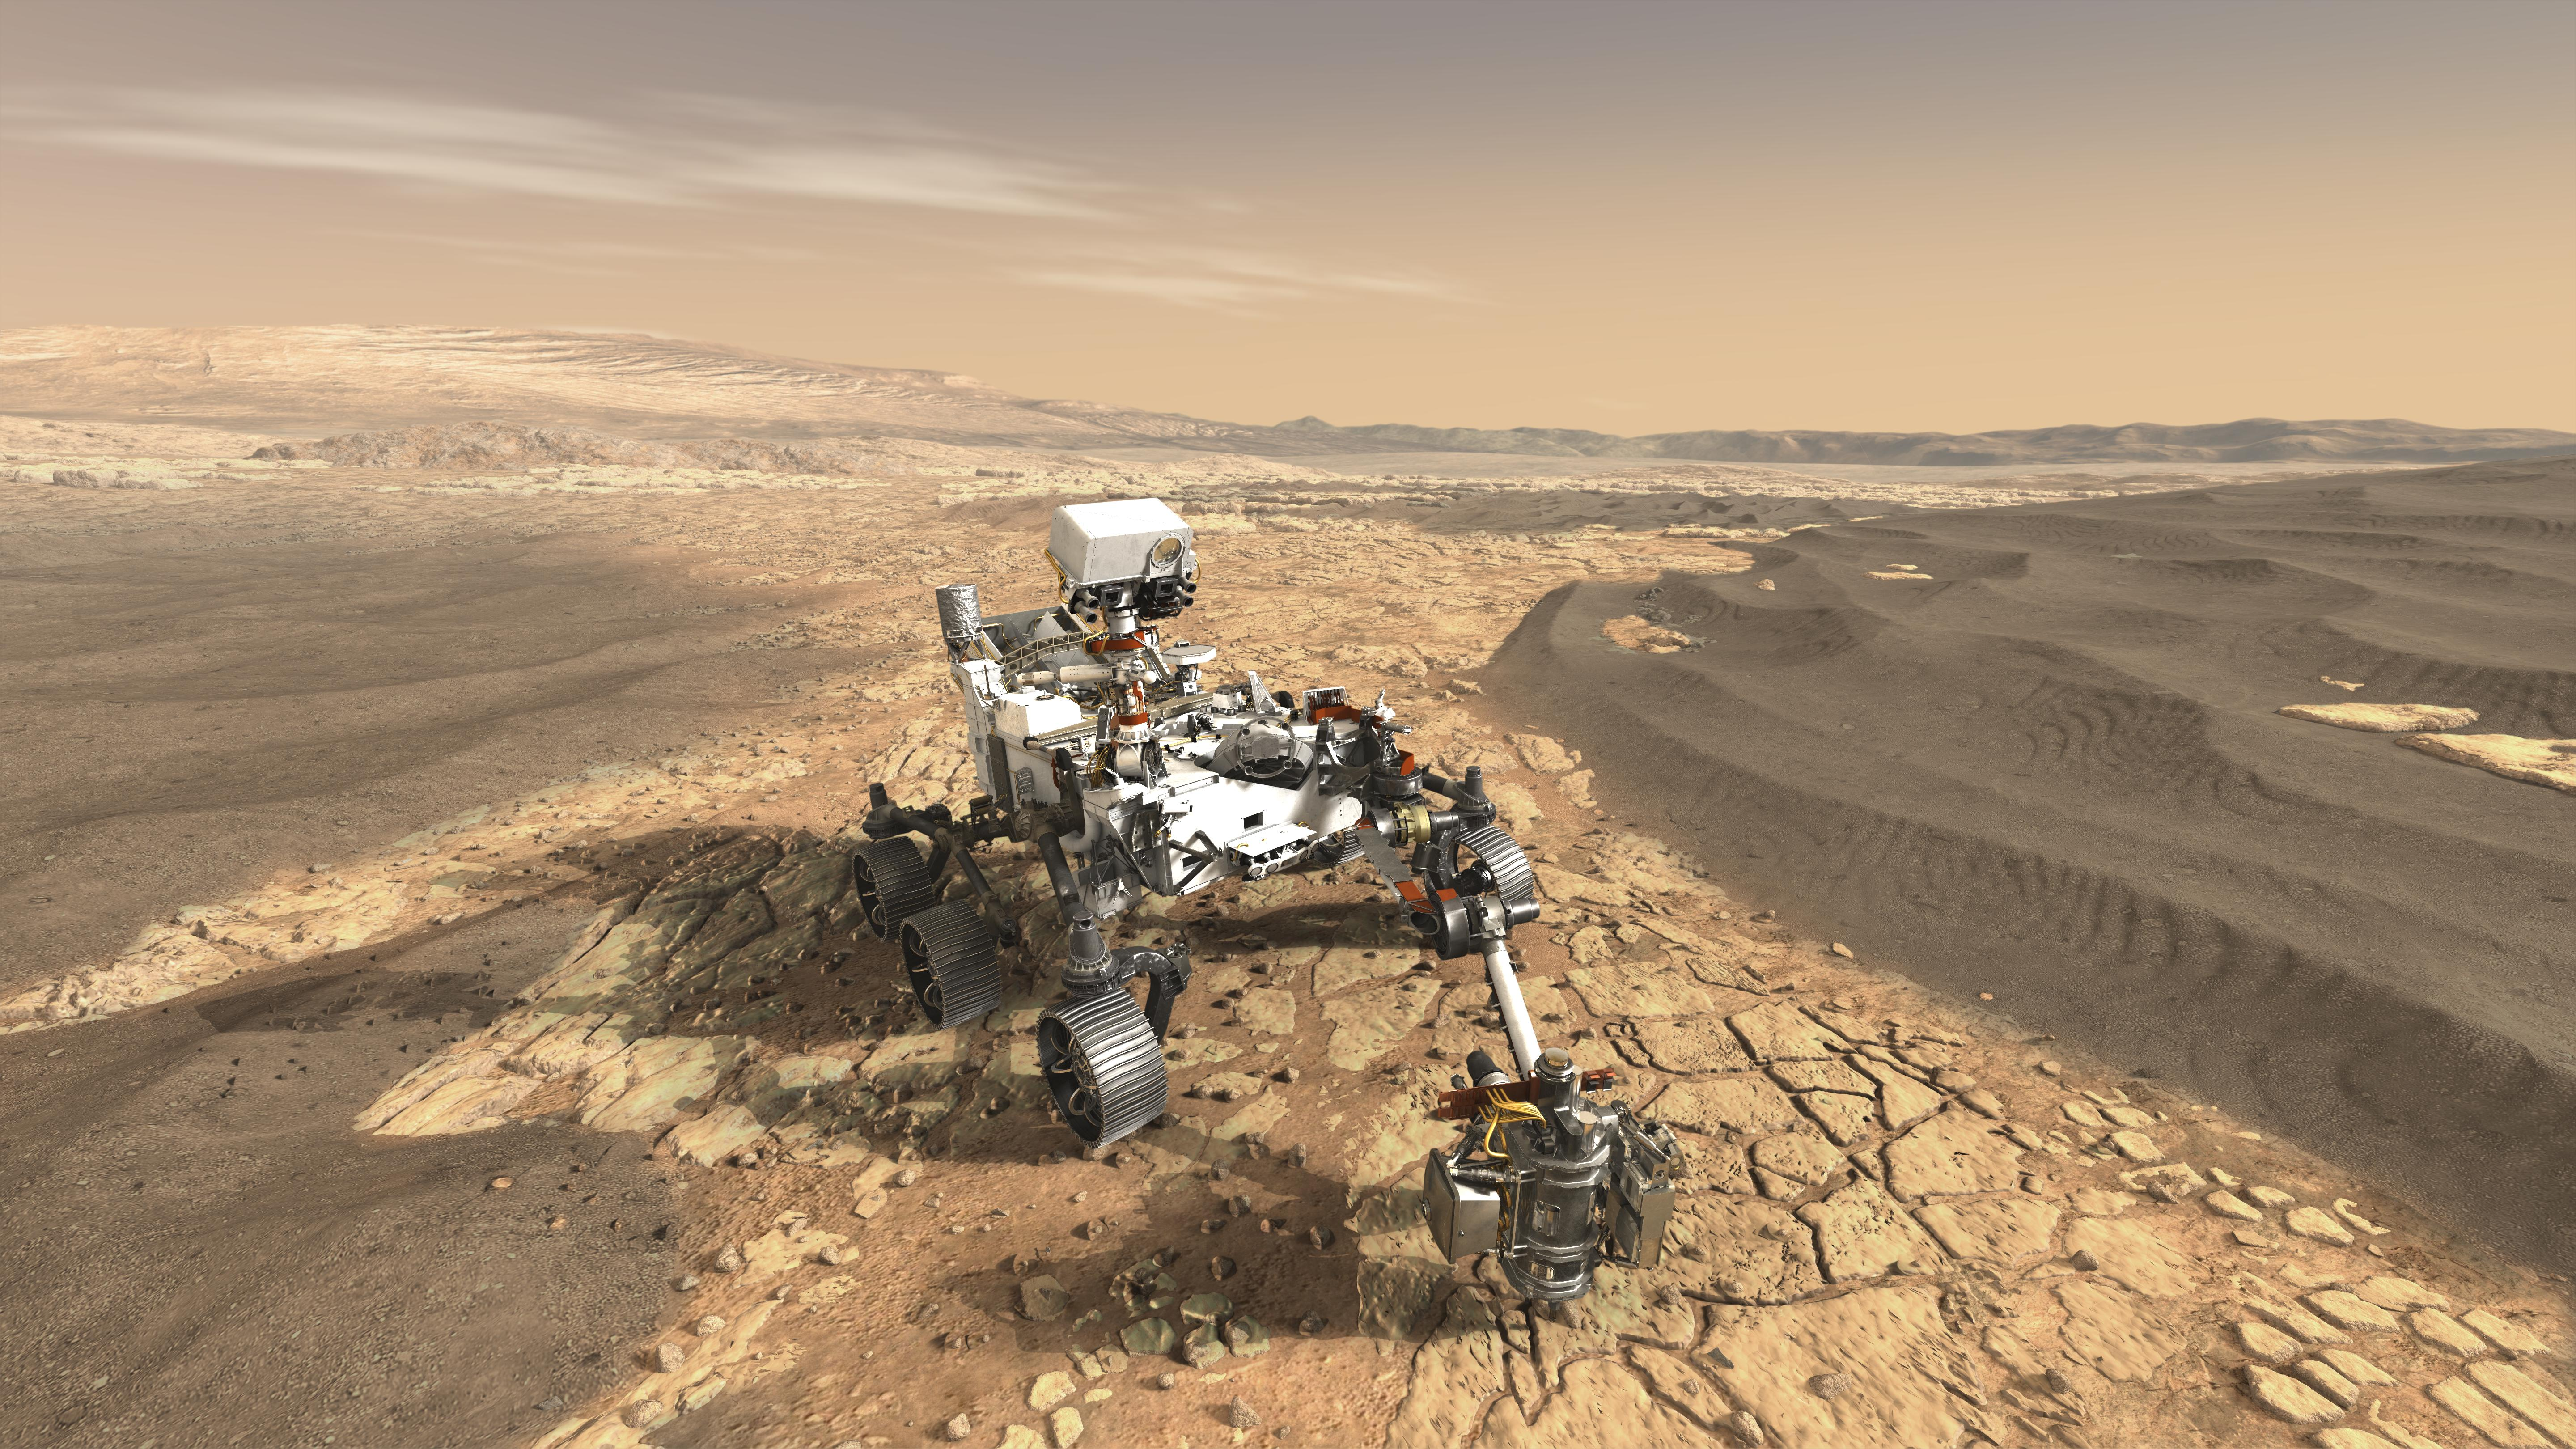 Space Images | NASA's Mars 2020 Rover Artist's Concept #1